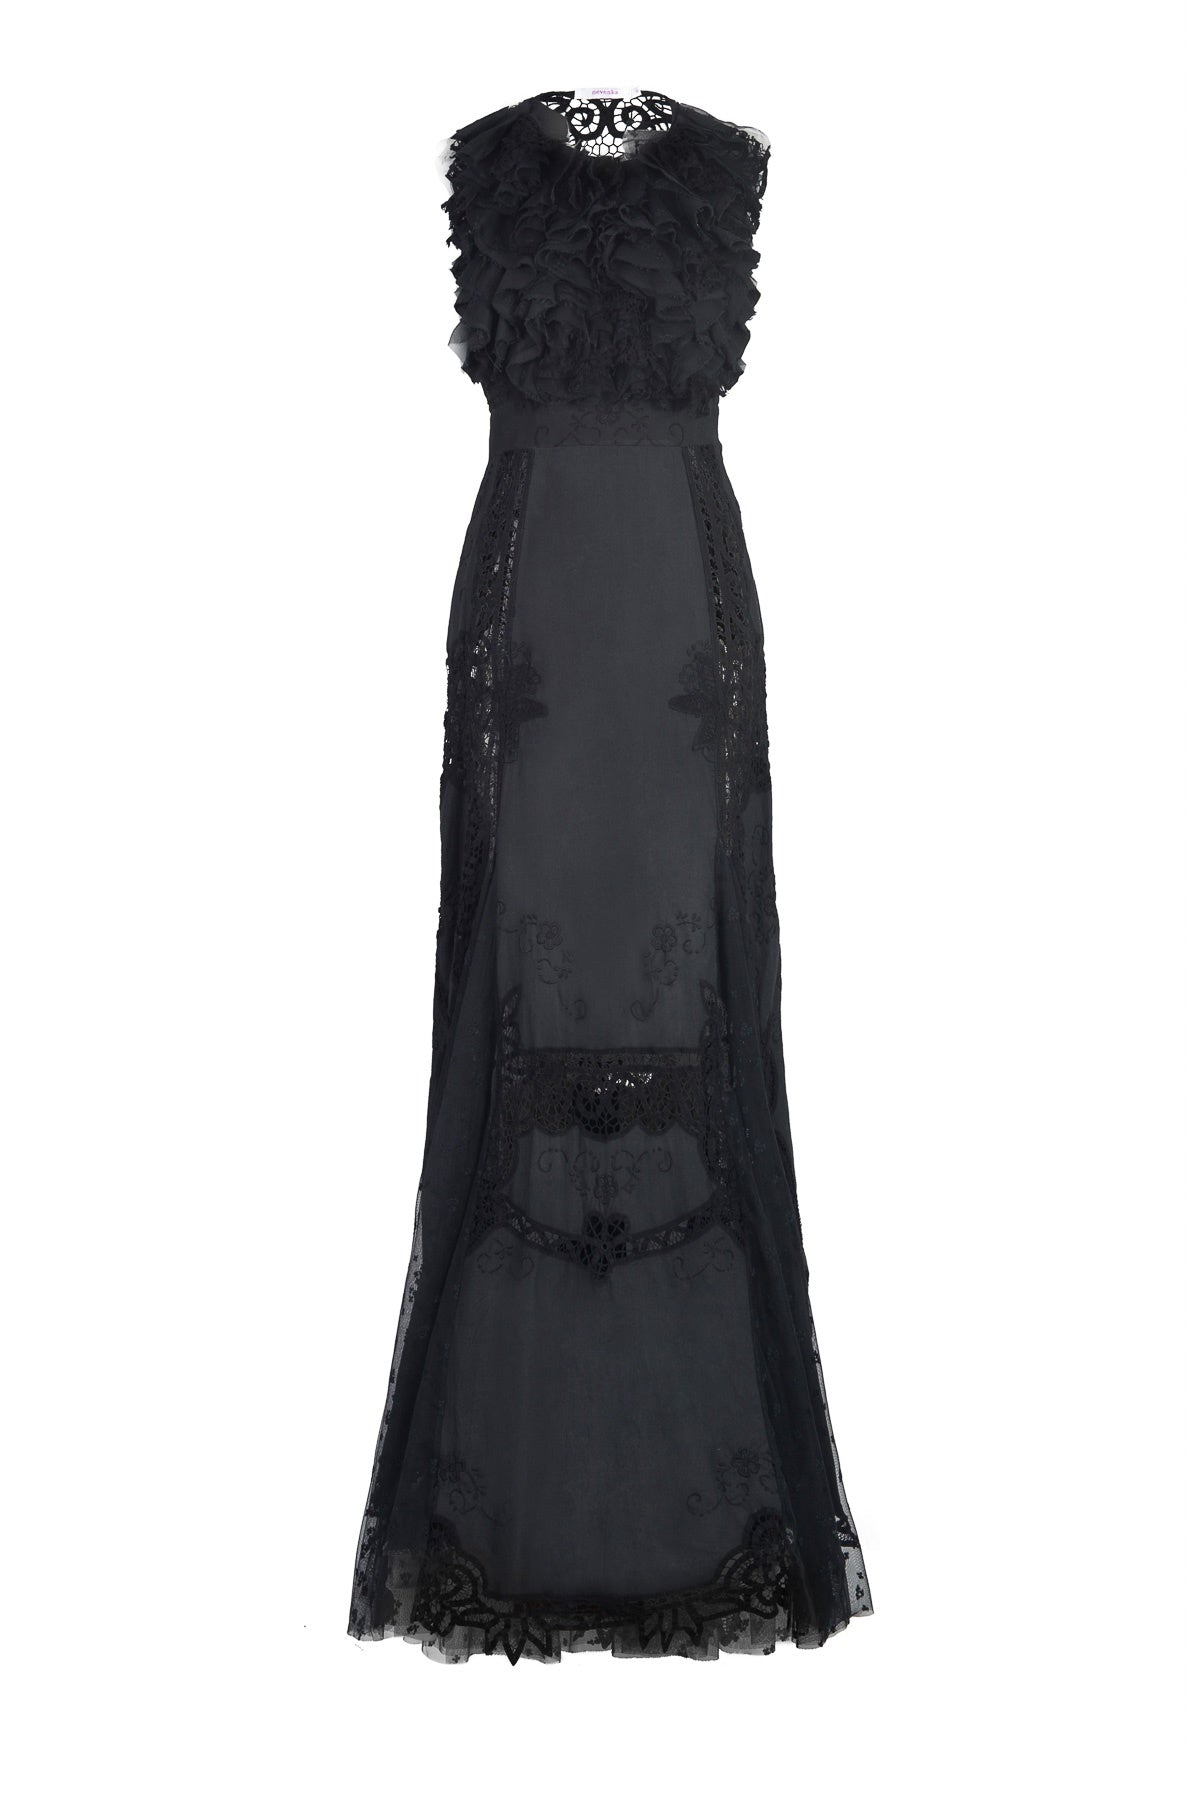 nevenka black rose dress front